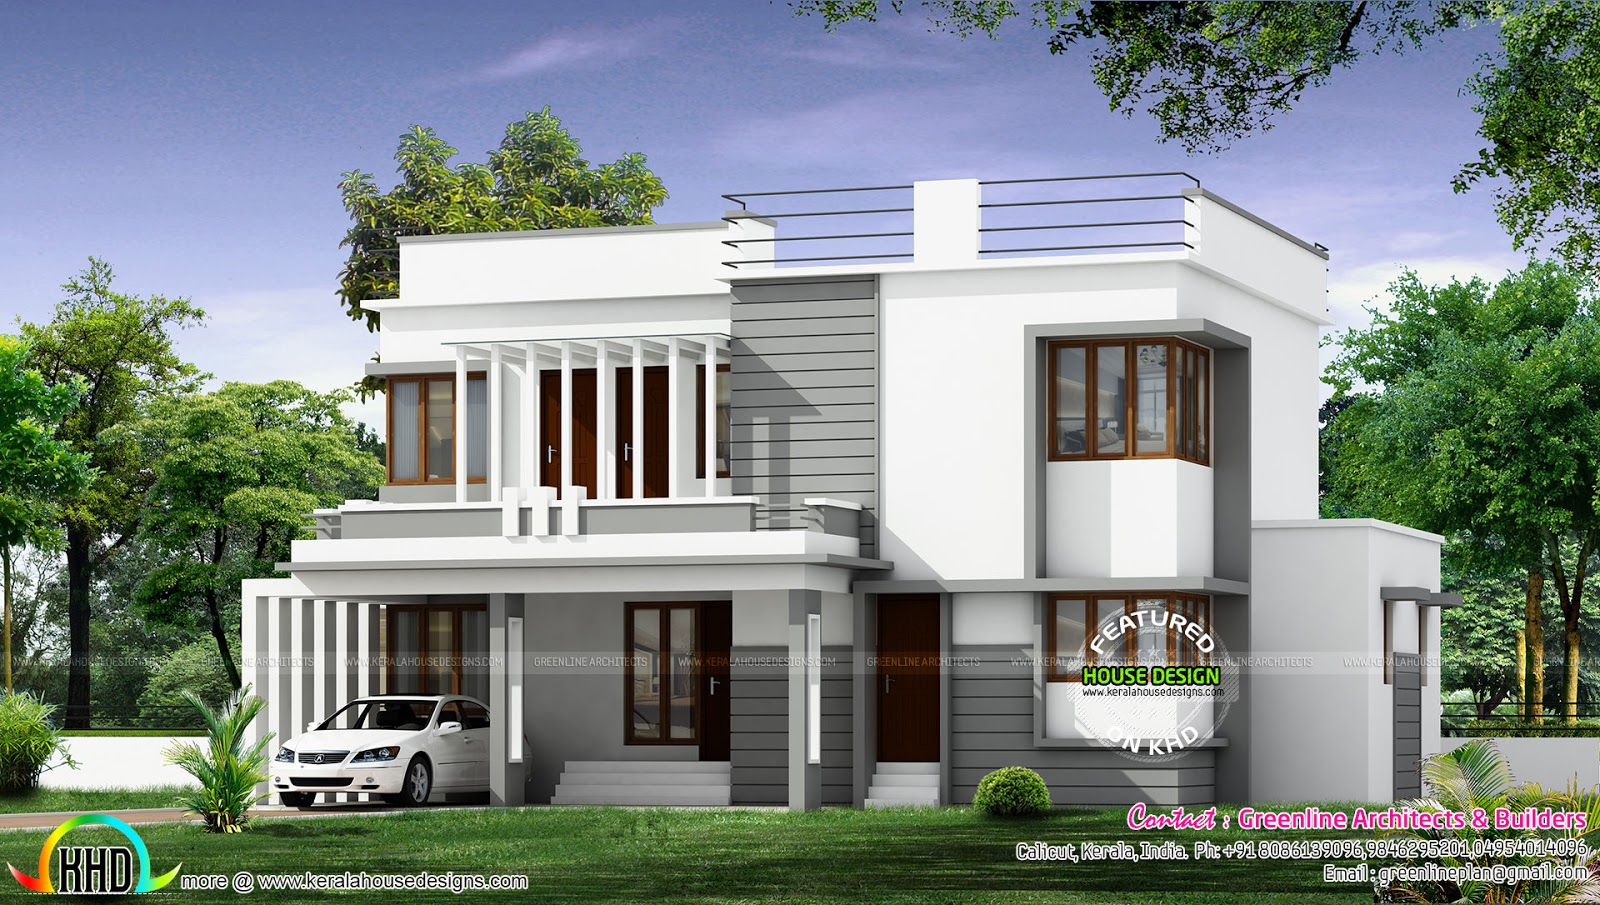 new modern house architecture kerala home design and